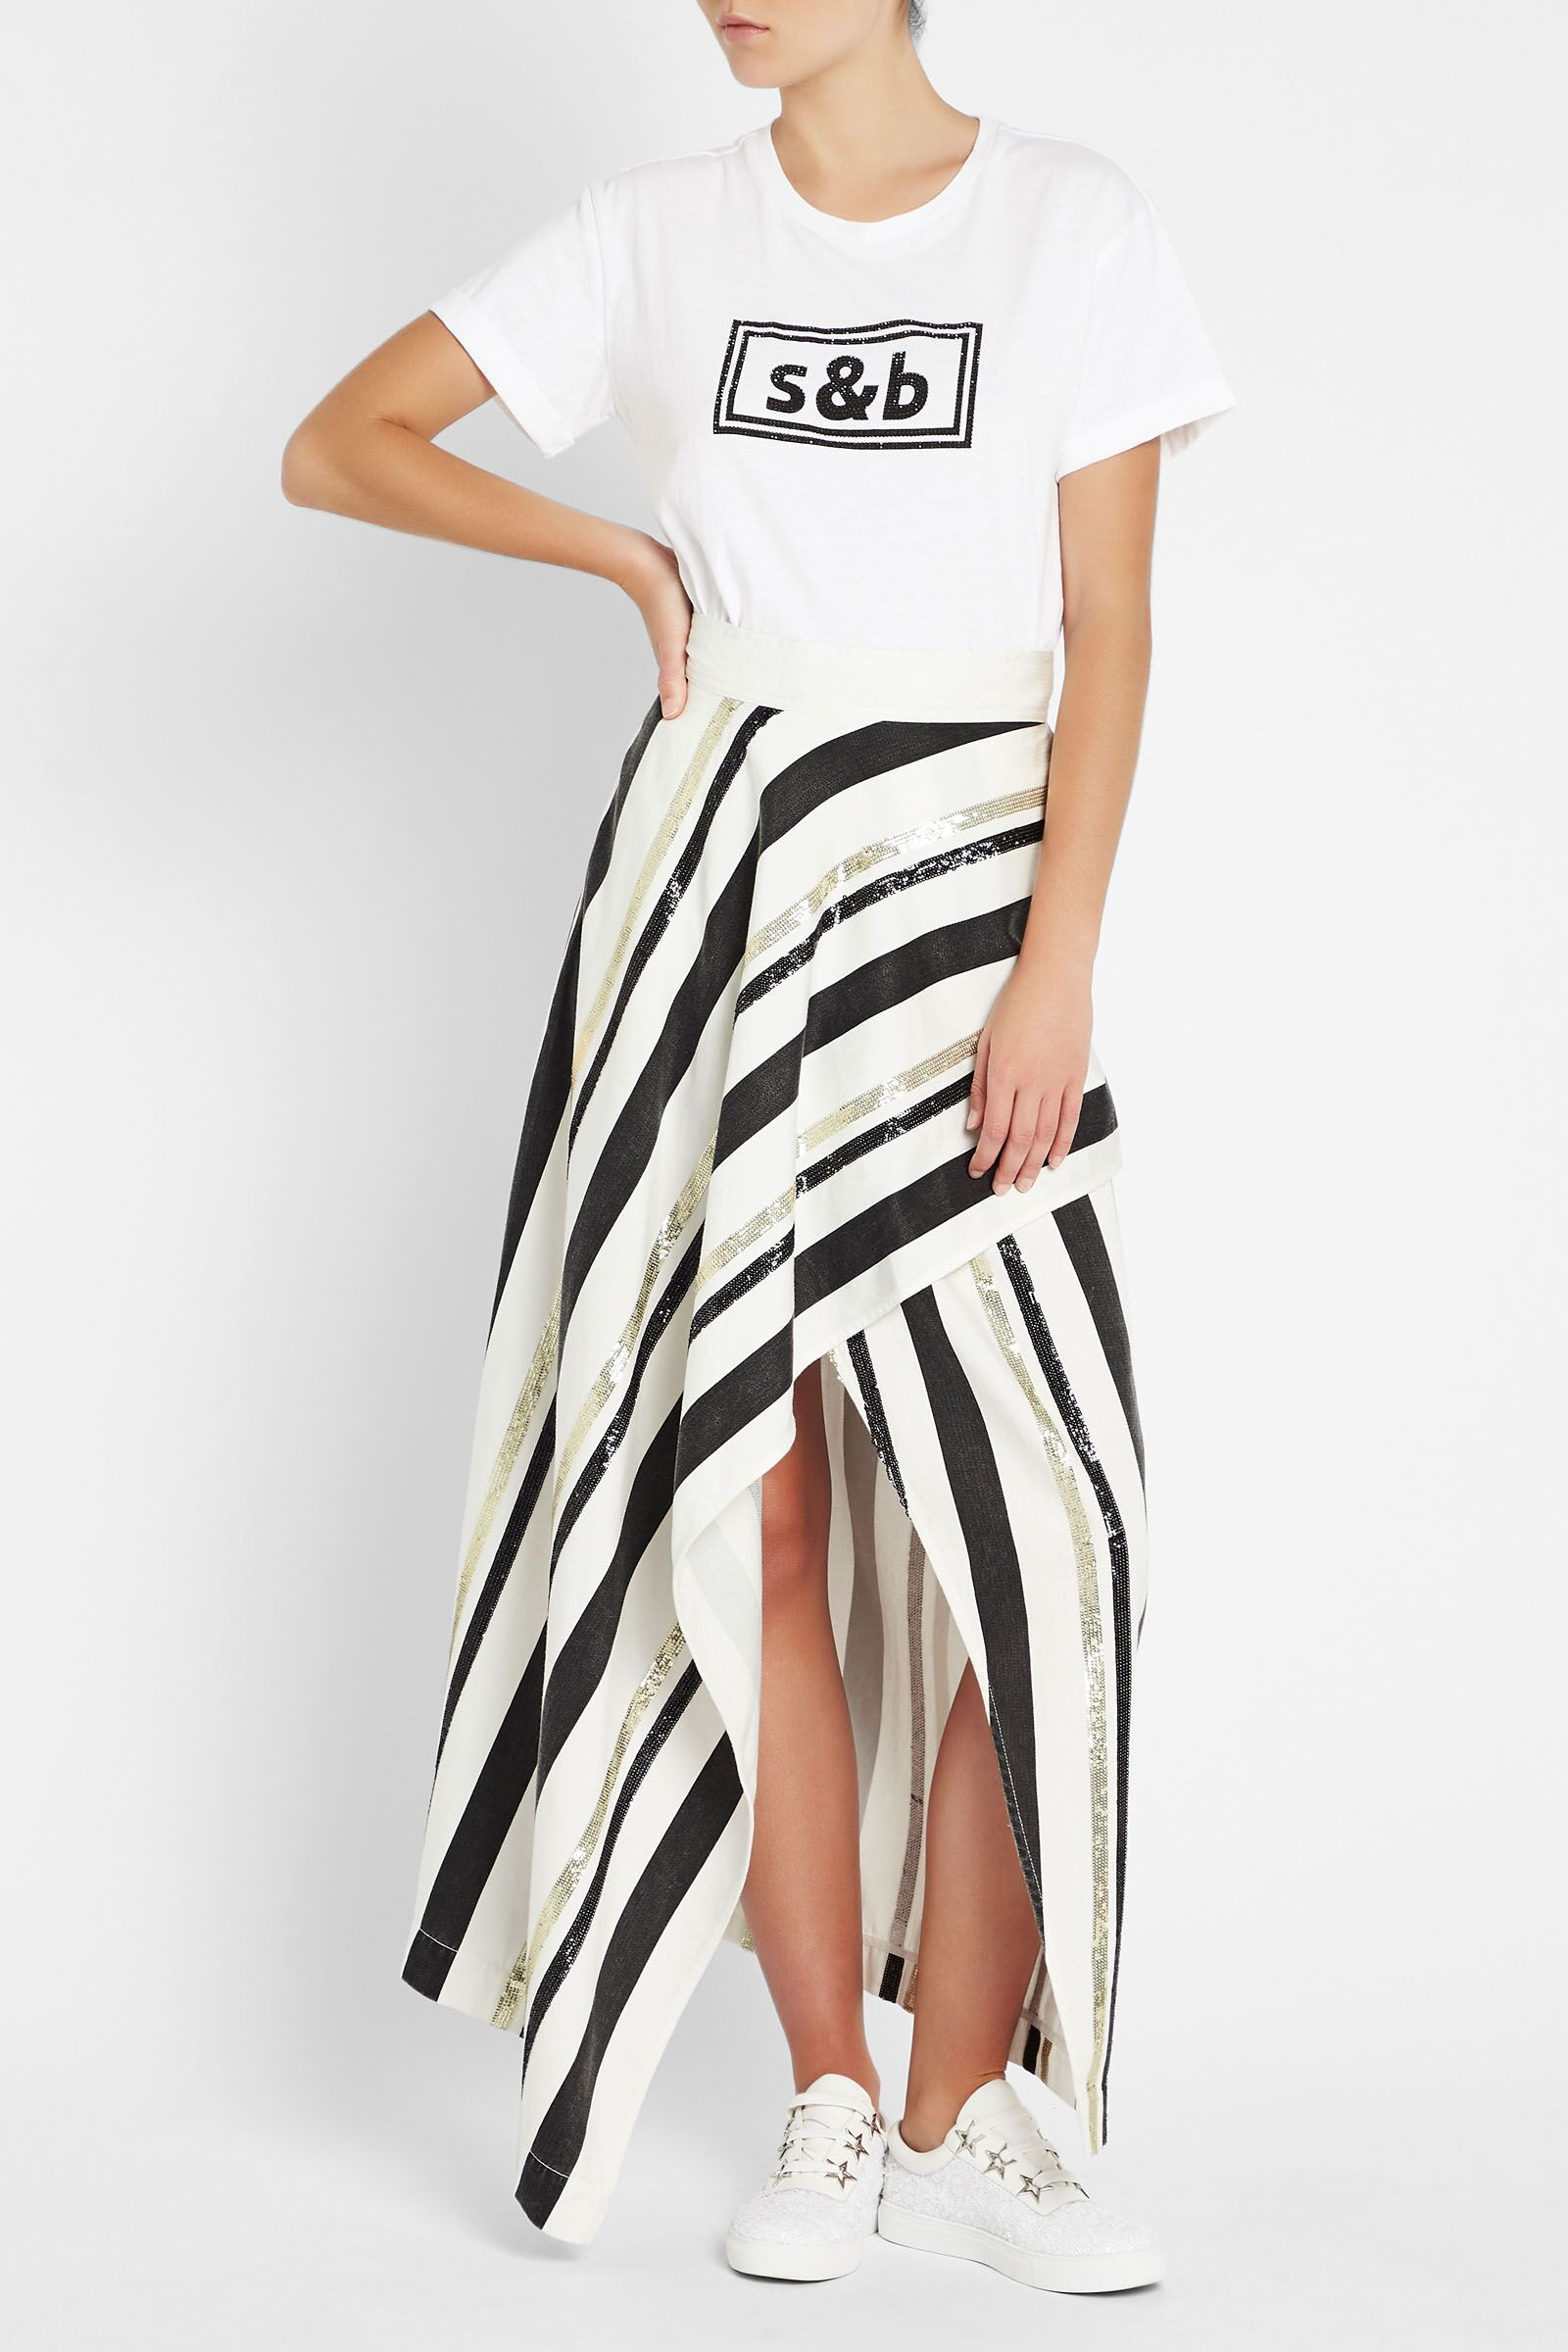 Sass And Bide Future So Bright Skirt With Images Bright Skirt Fashion Skirts